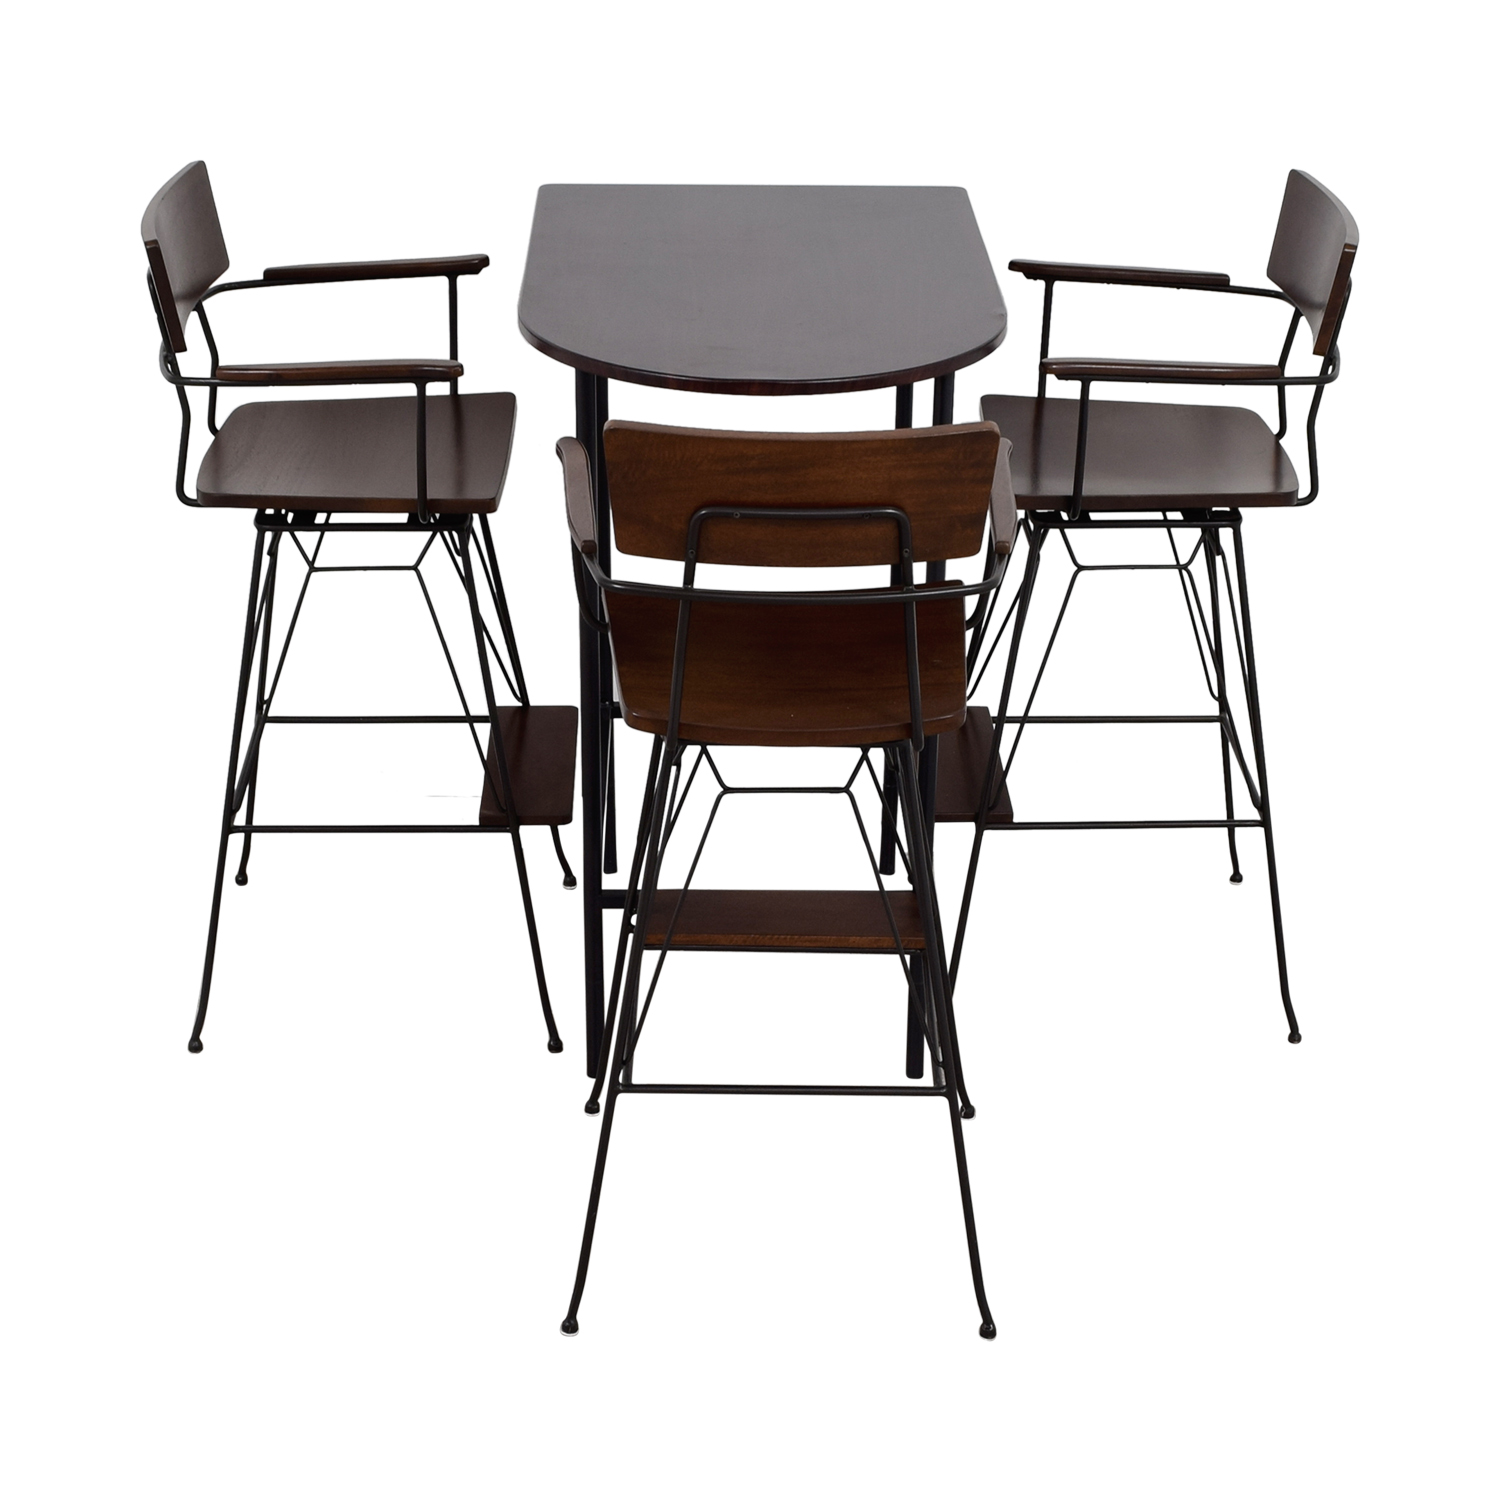 Crate & Barrel Crate & Barrel Pub Dining Set Brown